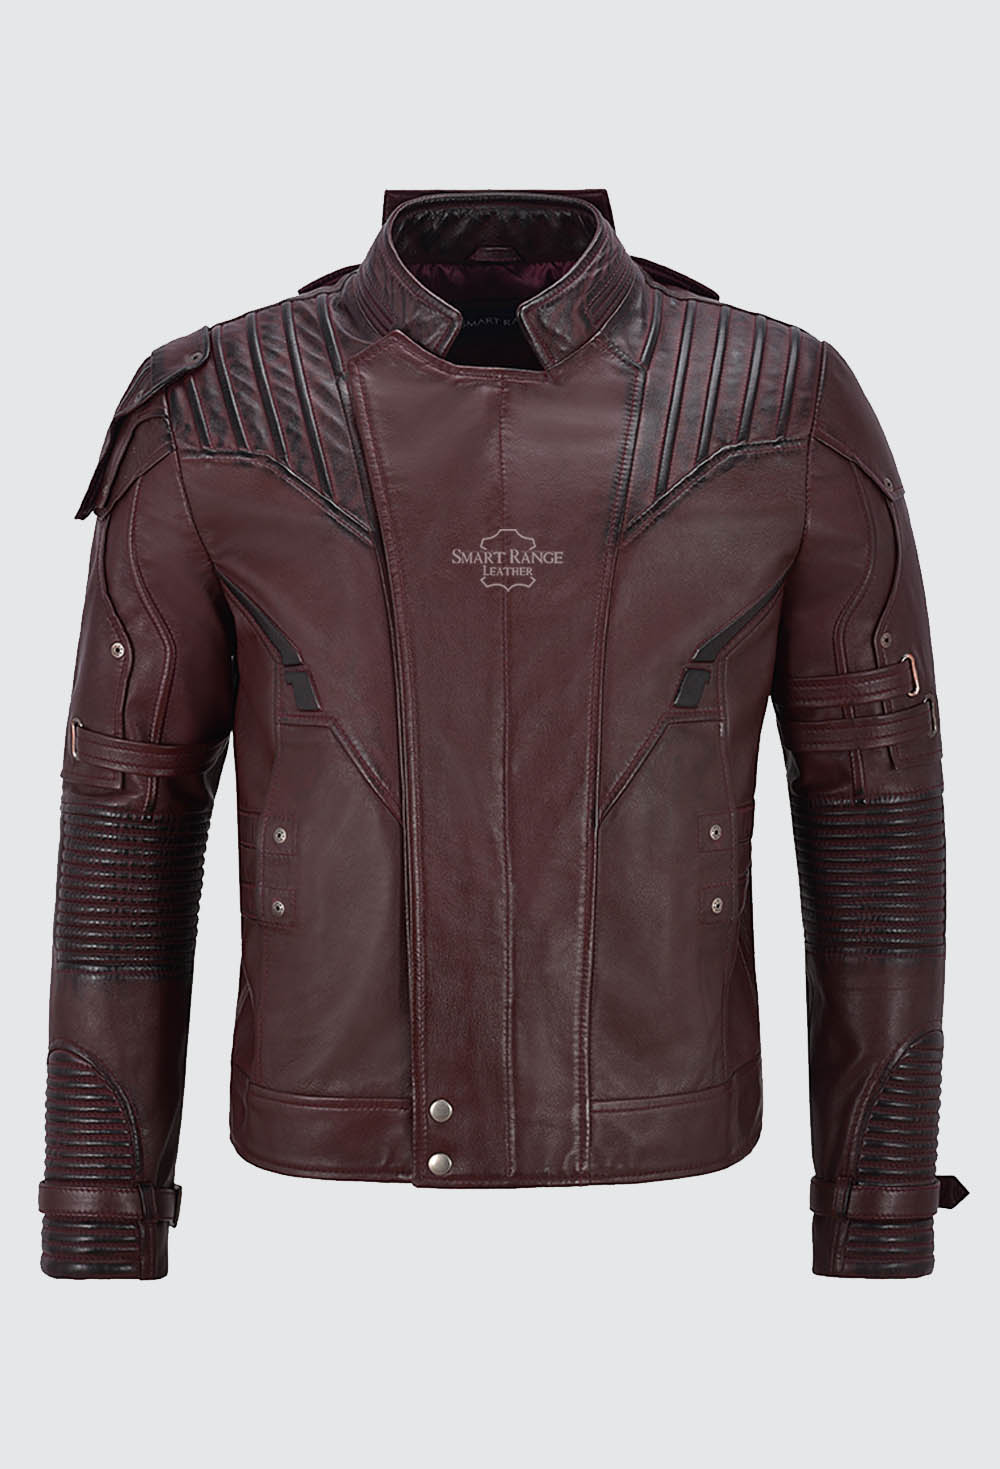 Star wars movie leather jackets, Movies leather jackets on sale